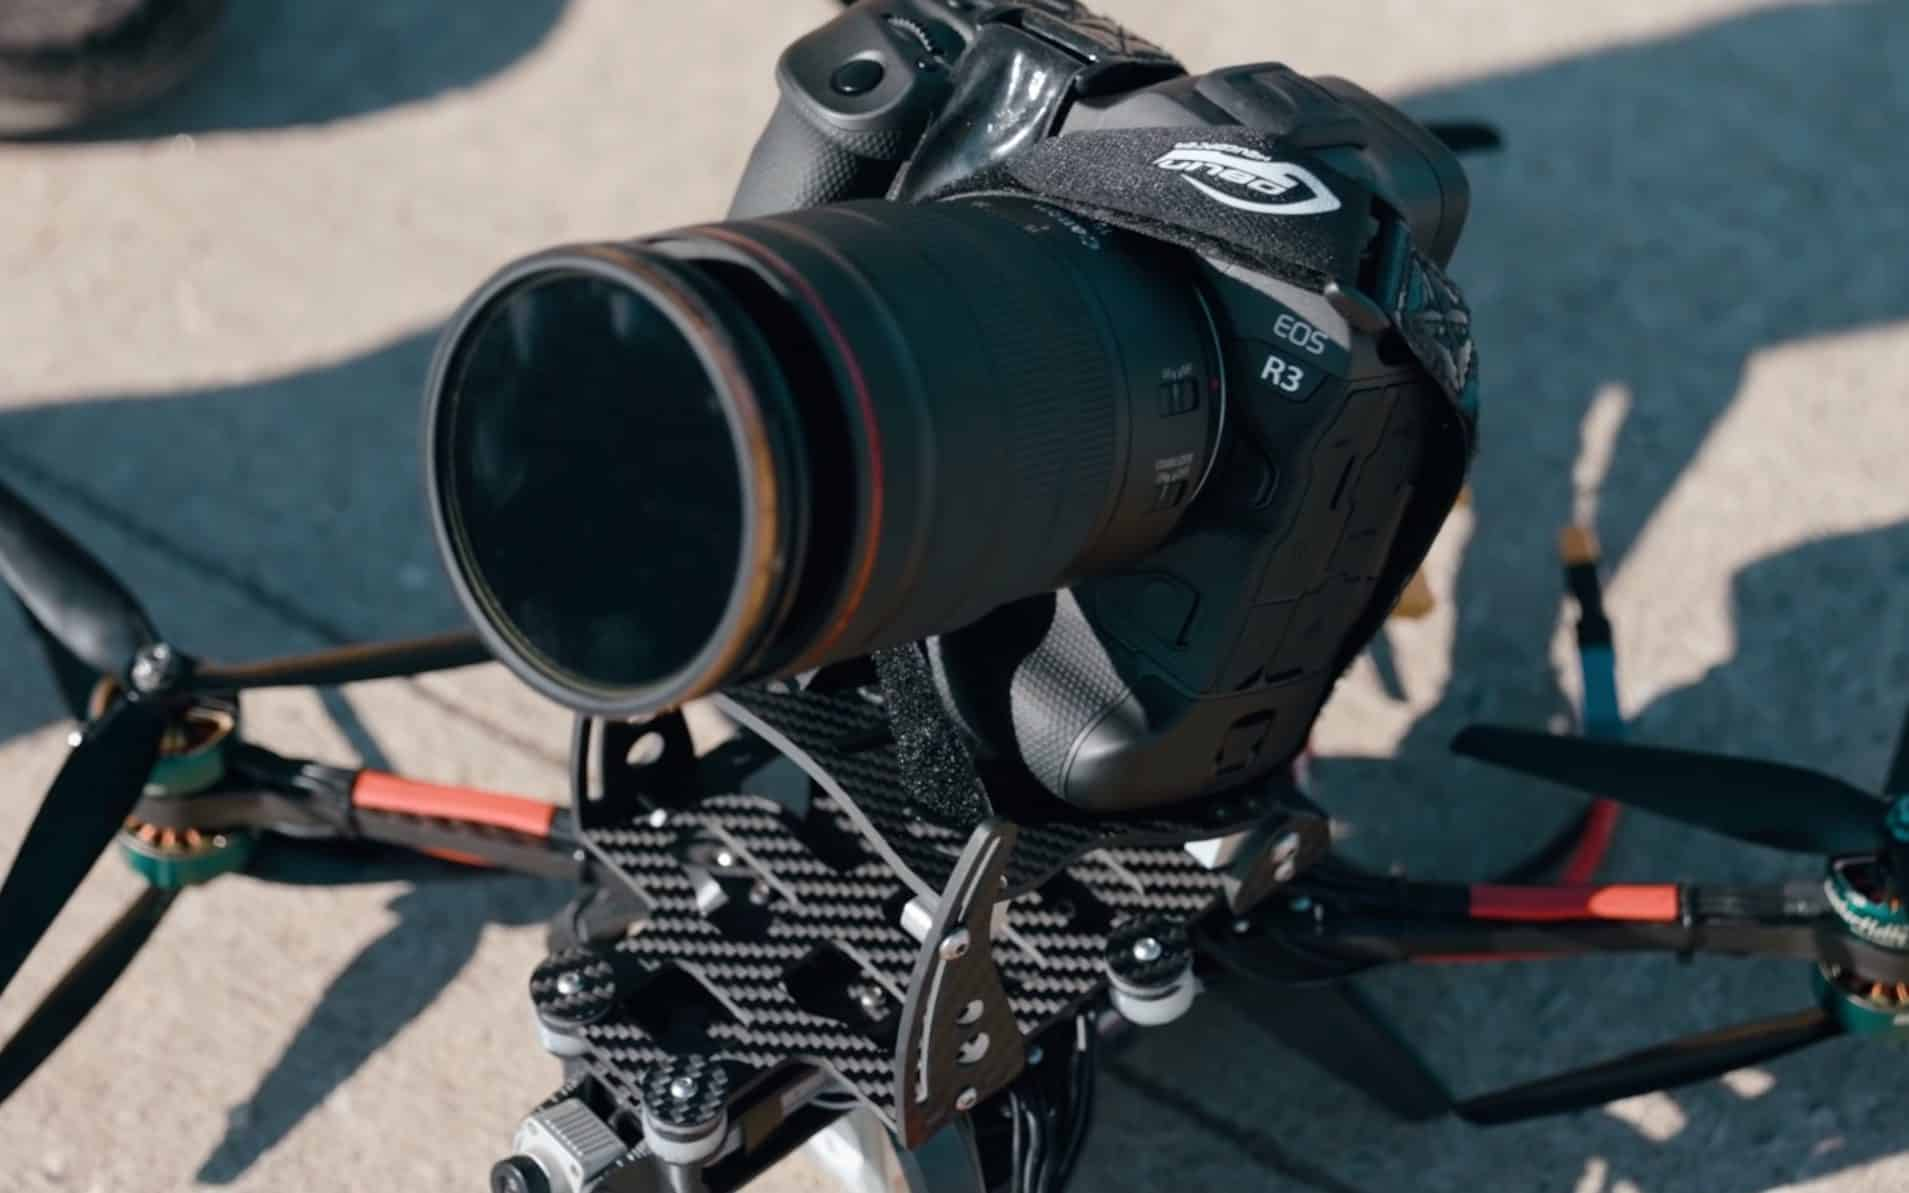 Peter McKinnon puts new Canon EOS R3 on FPV drone. What could possibly go wrong?